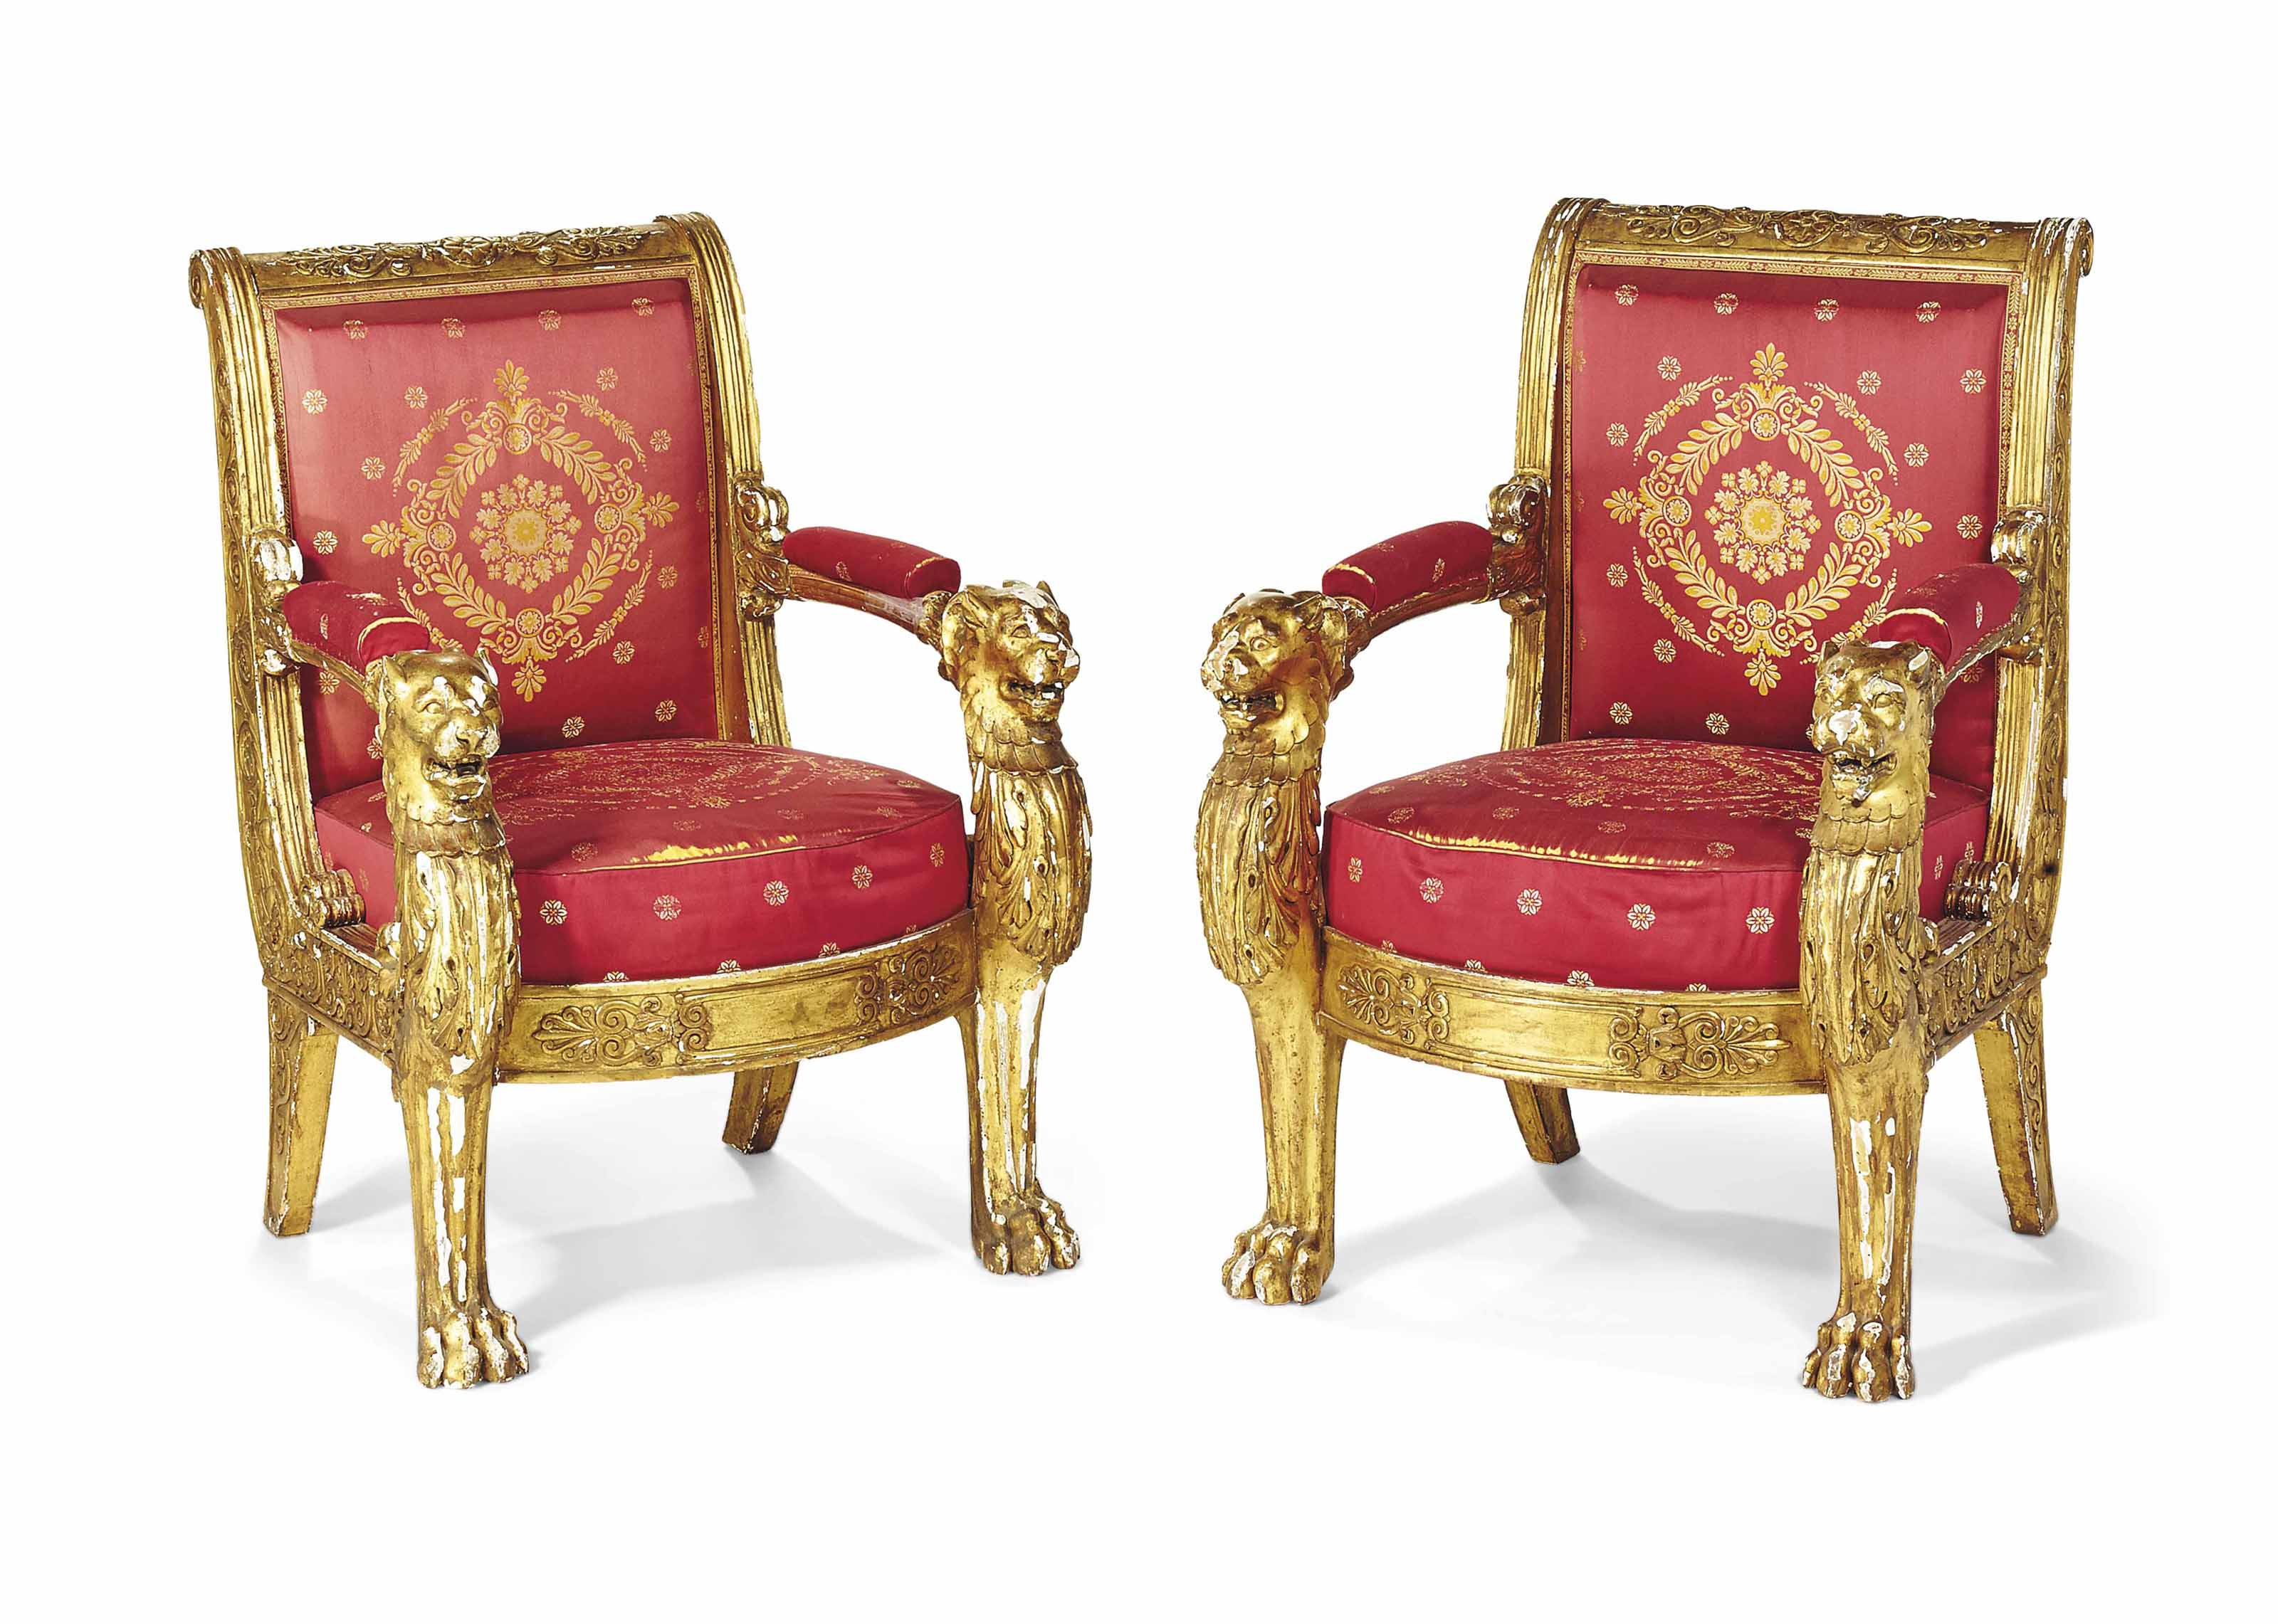 A PAIR OF RESTAURATION GILTWOOD ARMCHAIRS